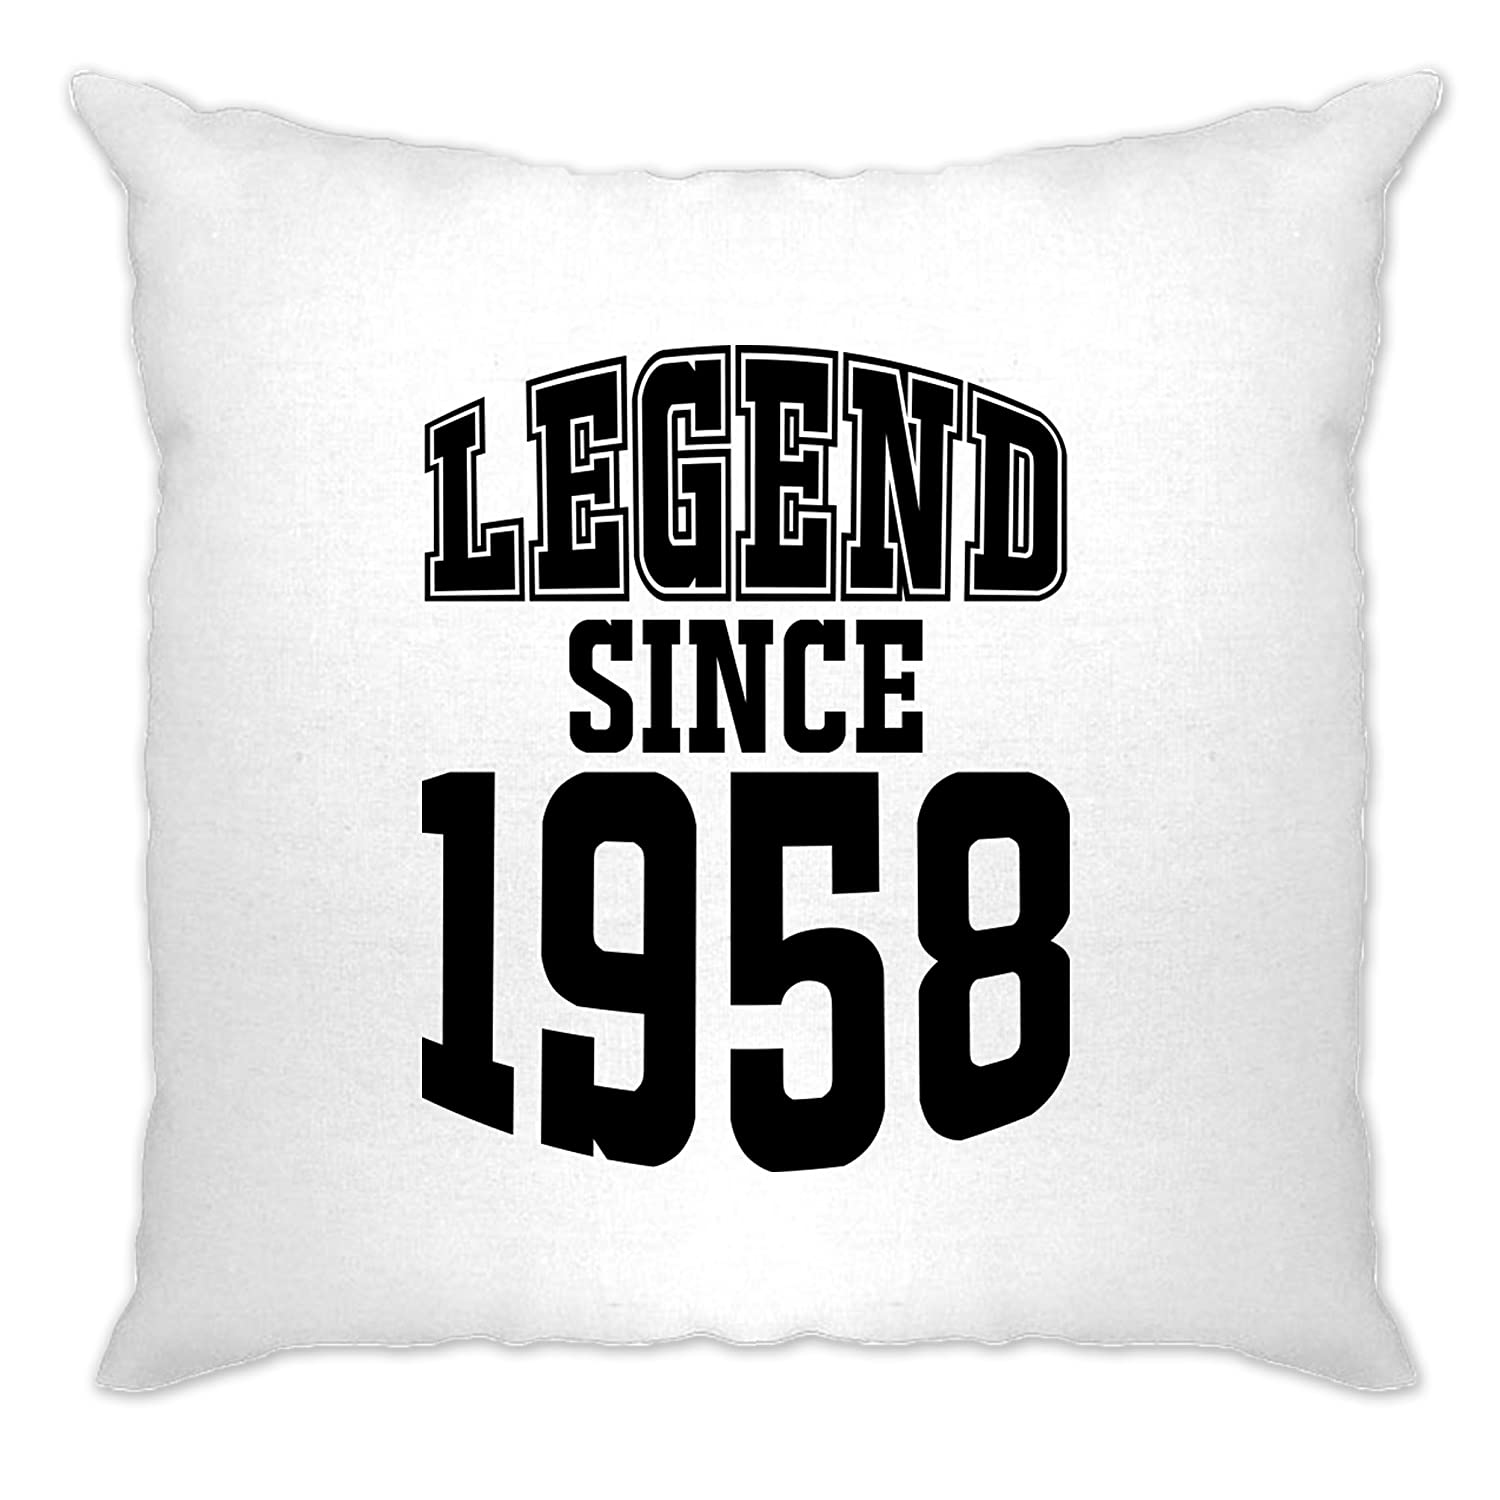 60th Birthday Cushion Cover Case Legend Since 1958 Tim And Ted A-CC-01597-NAT